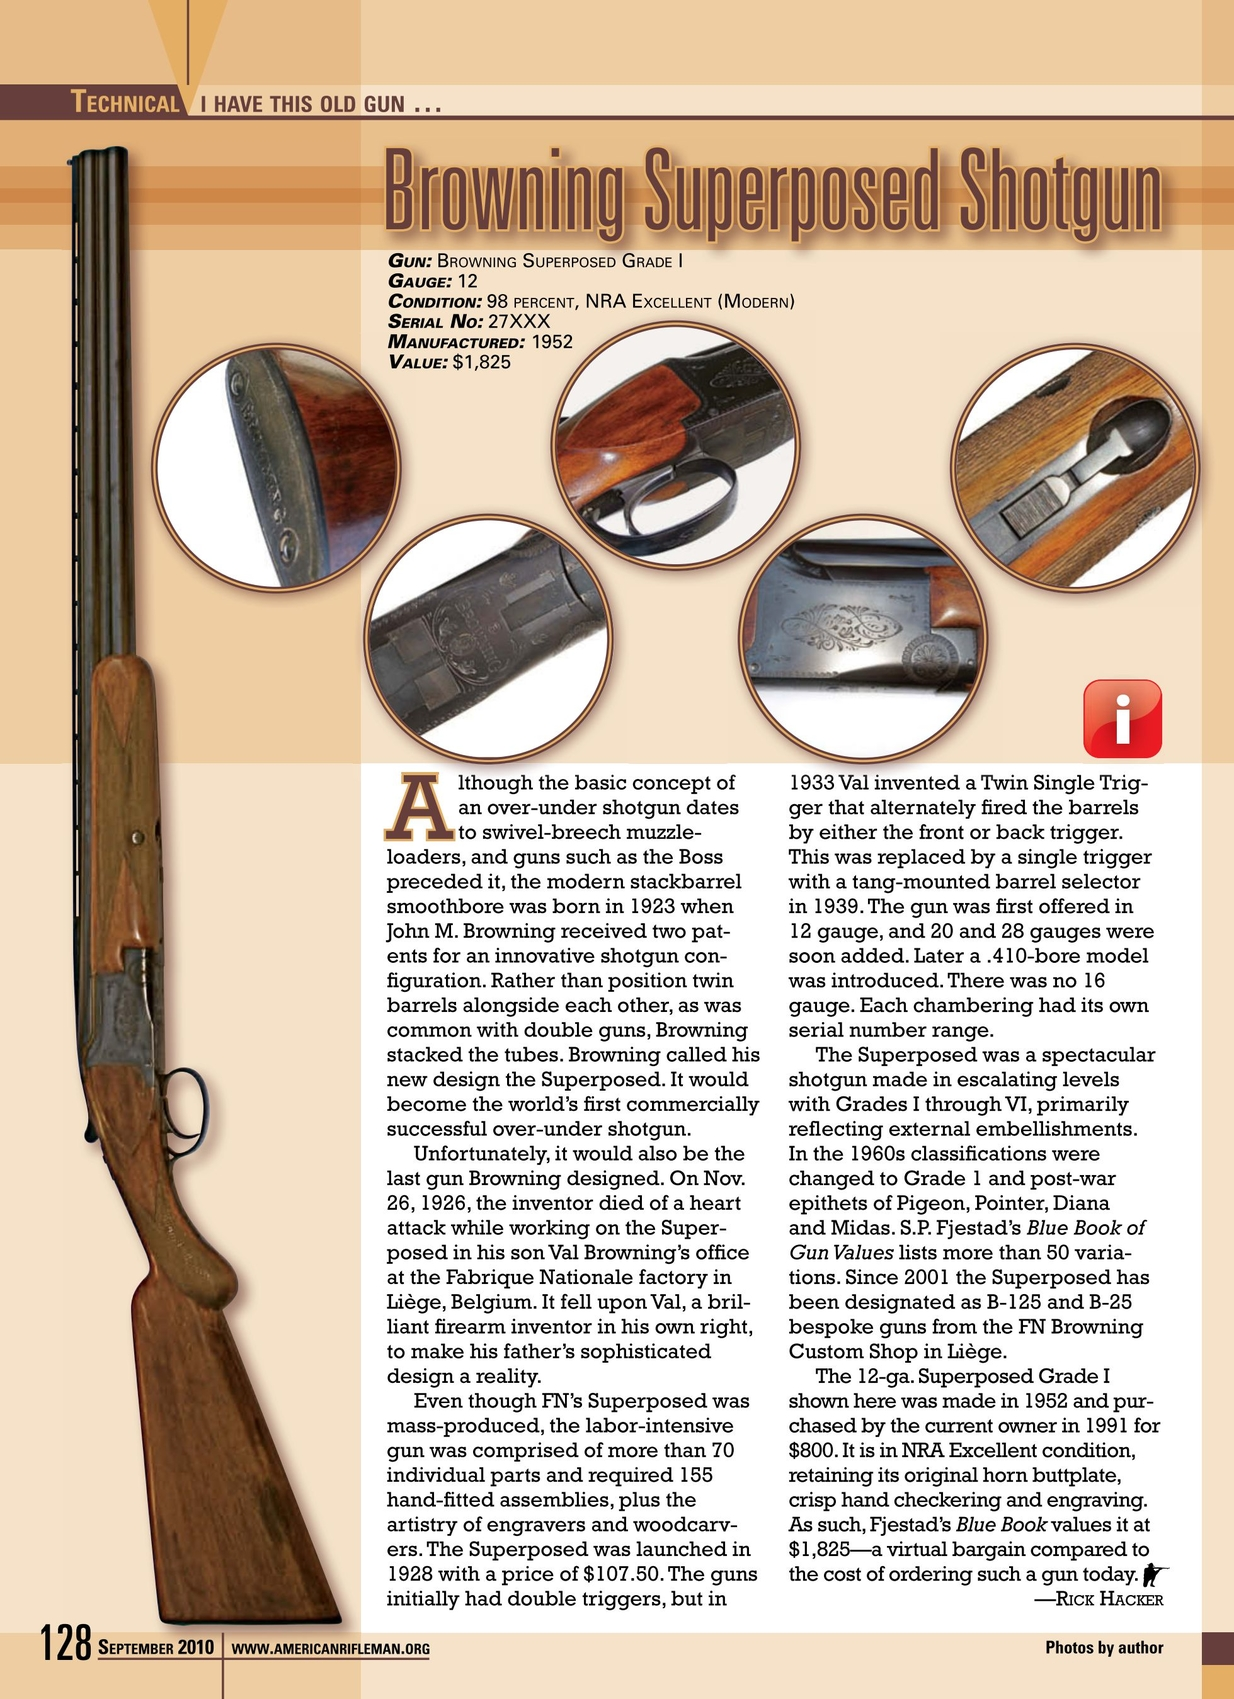 American Rifleman - September 2010